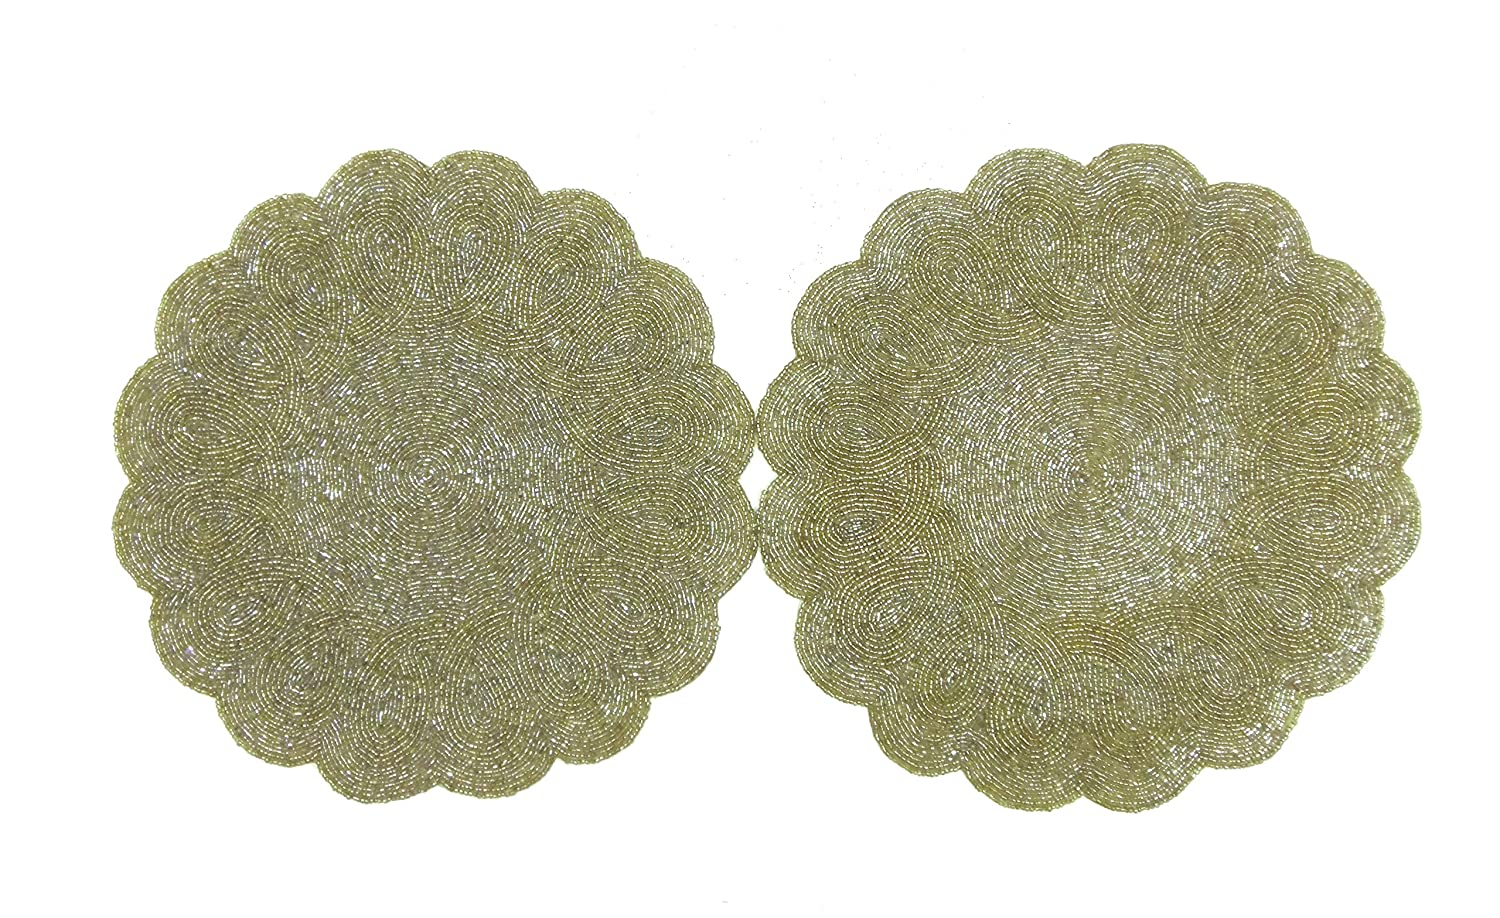 Cotton Craft - 2 Pack Beaded Placemat Set - Scalloped Round Hand Beaded Charger Placemat - Grey - Set of 2-14 Inches Round - Hand Made by Skilled artisans